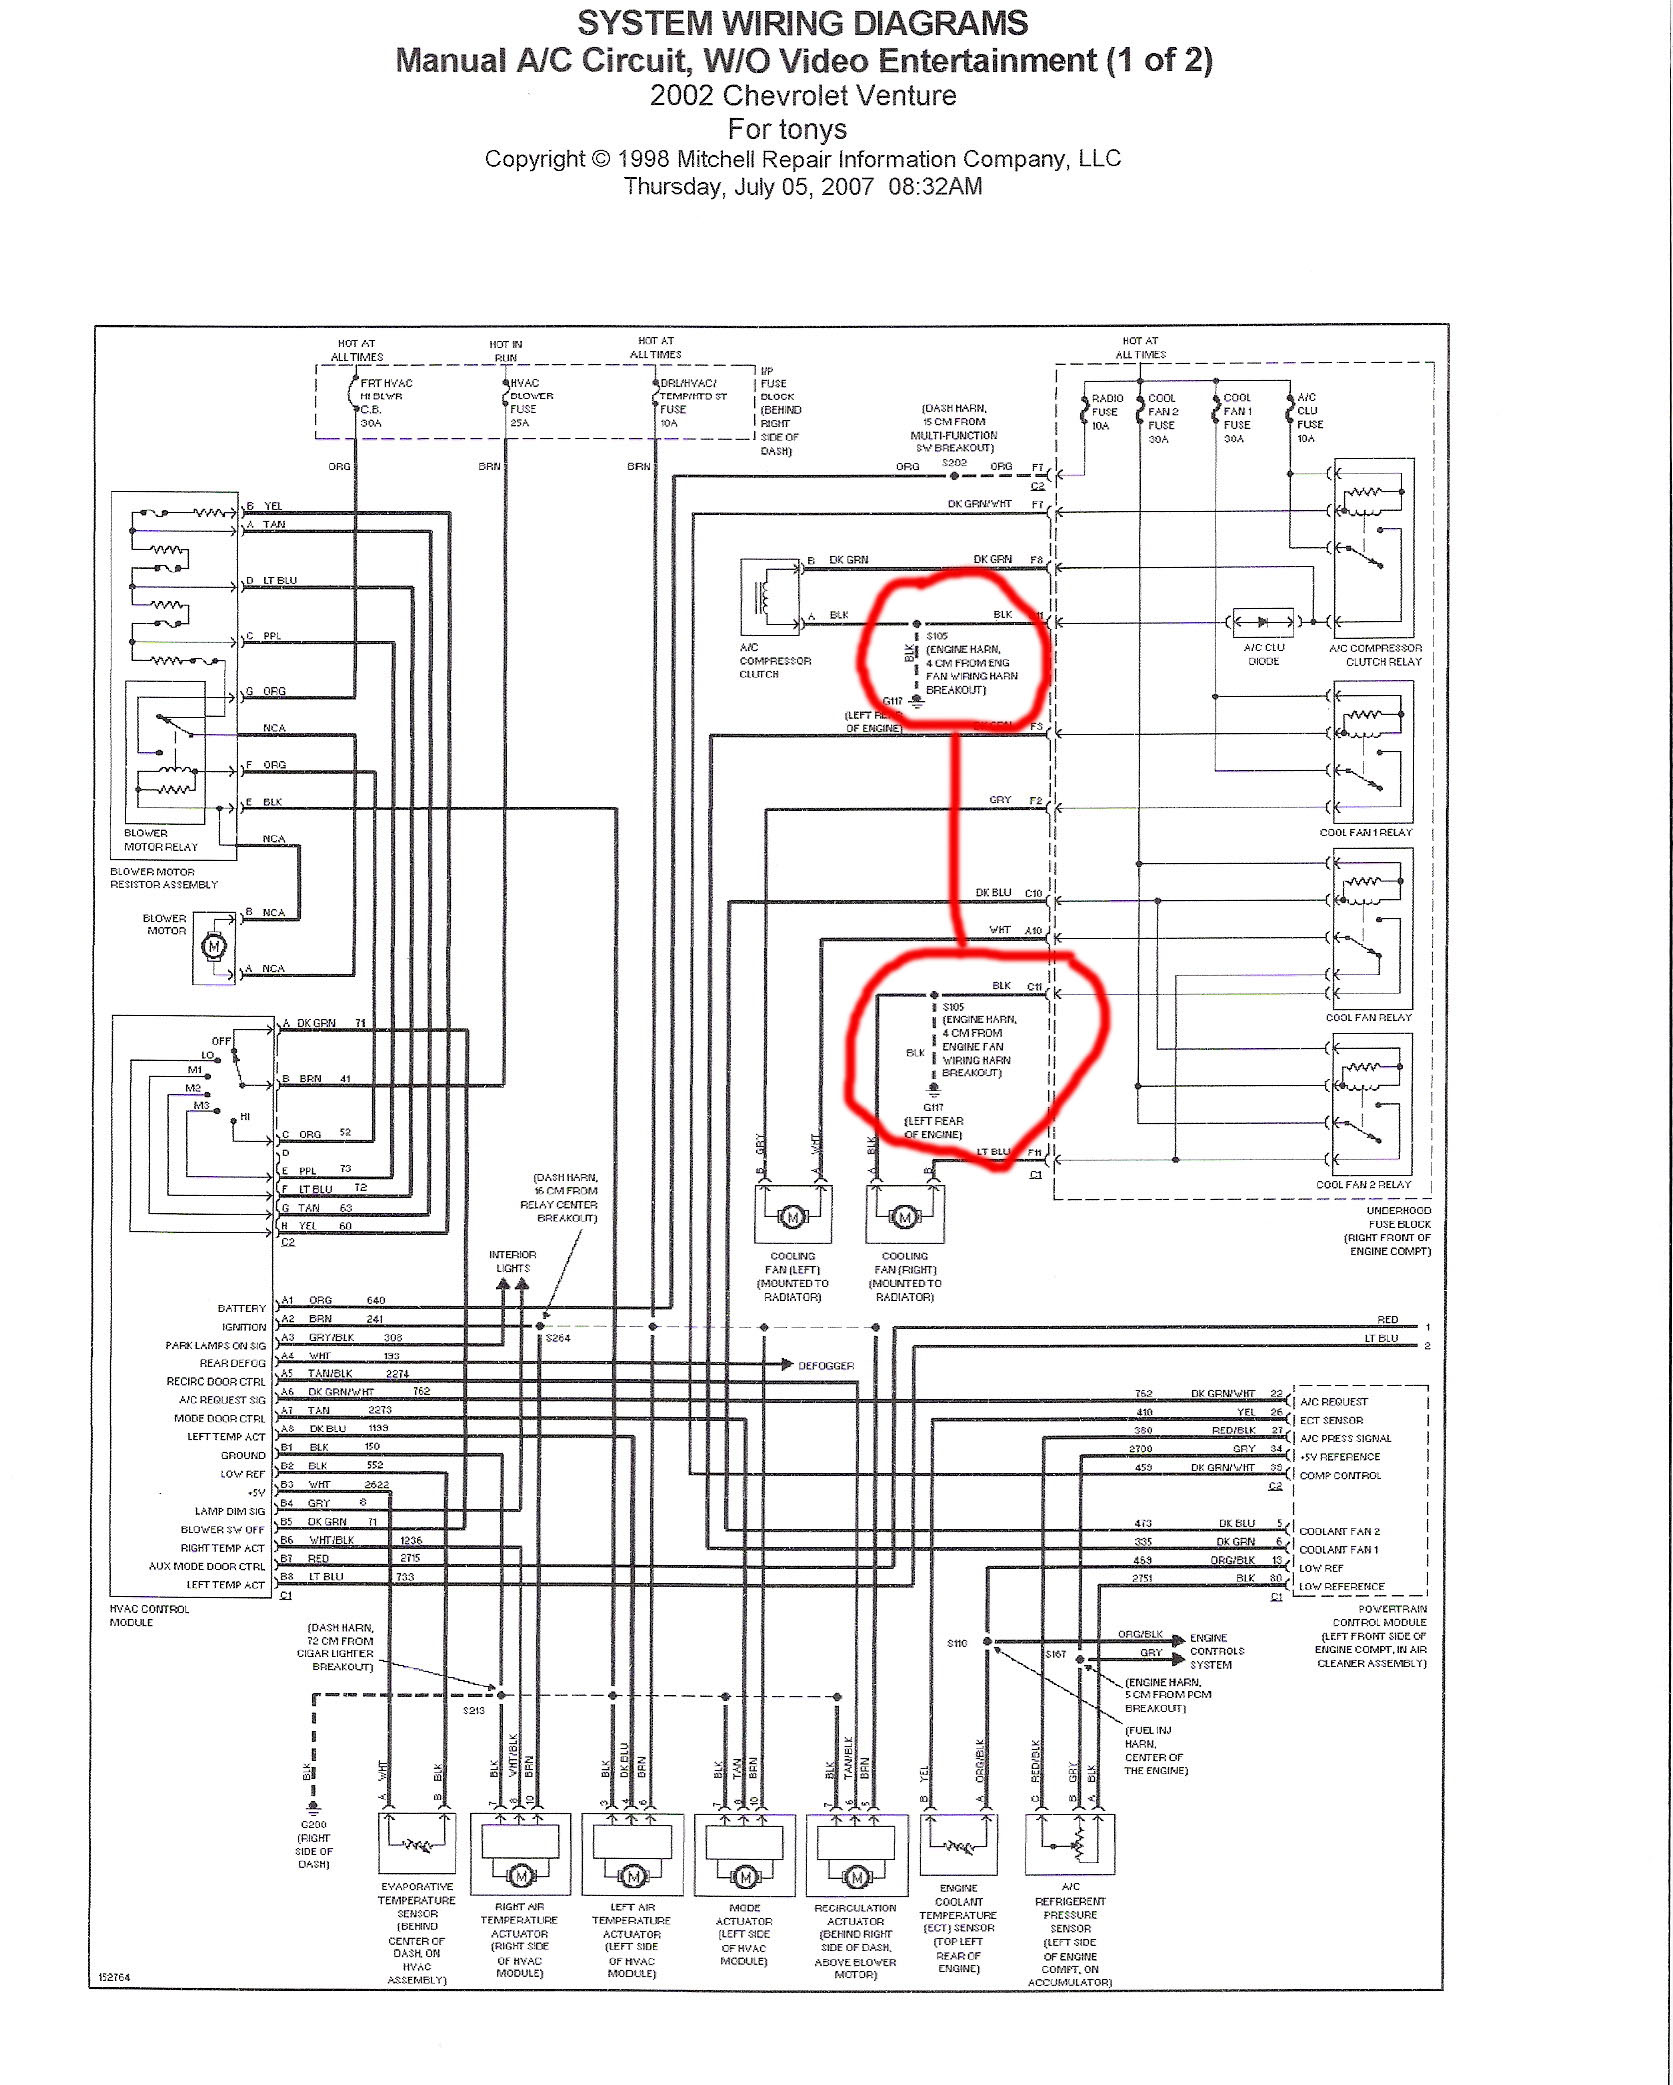 Gm Cooling Fan Wiring - Wiring Diagrams List on